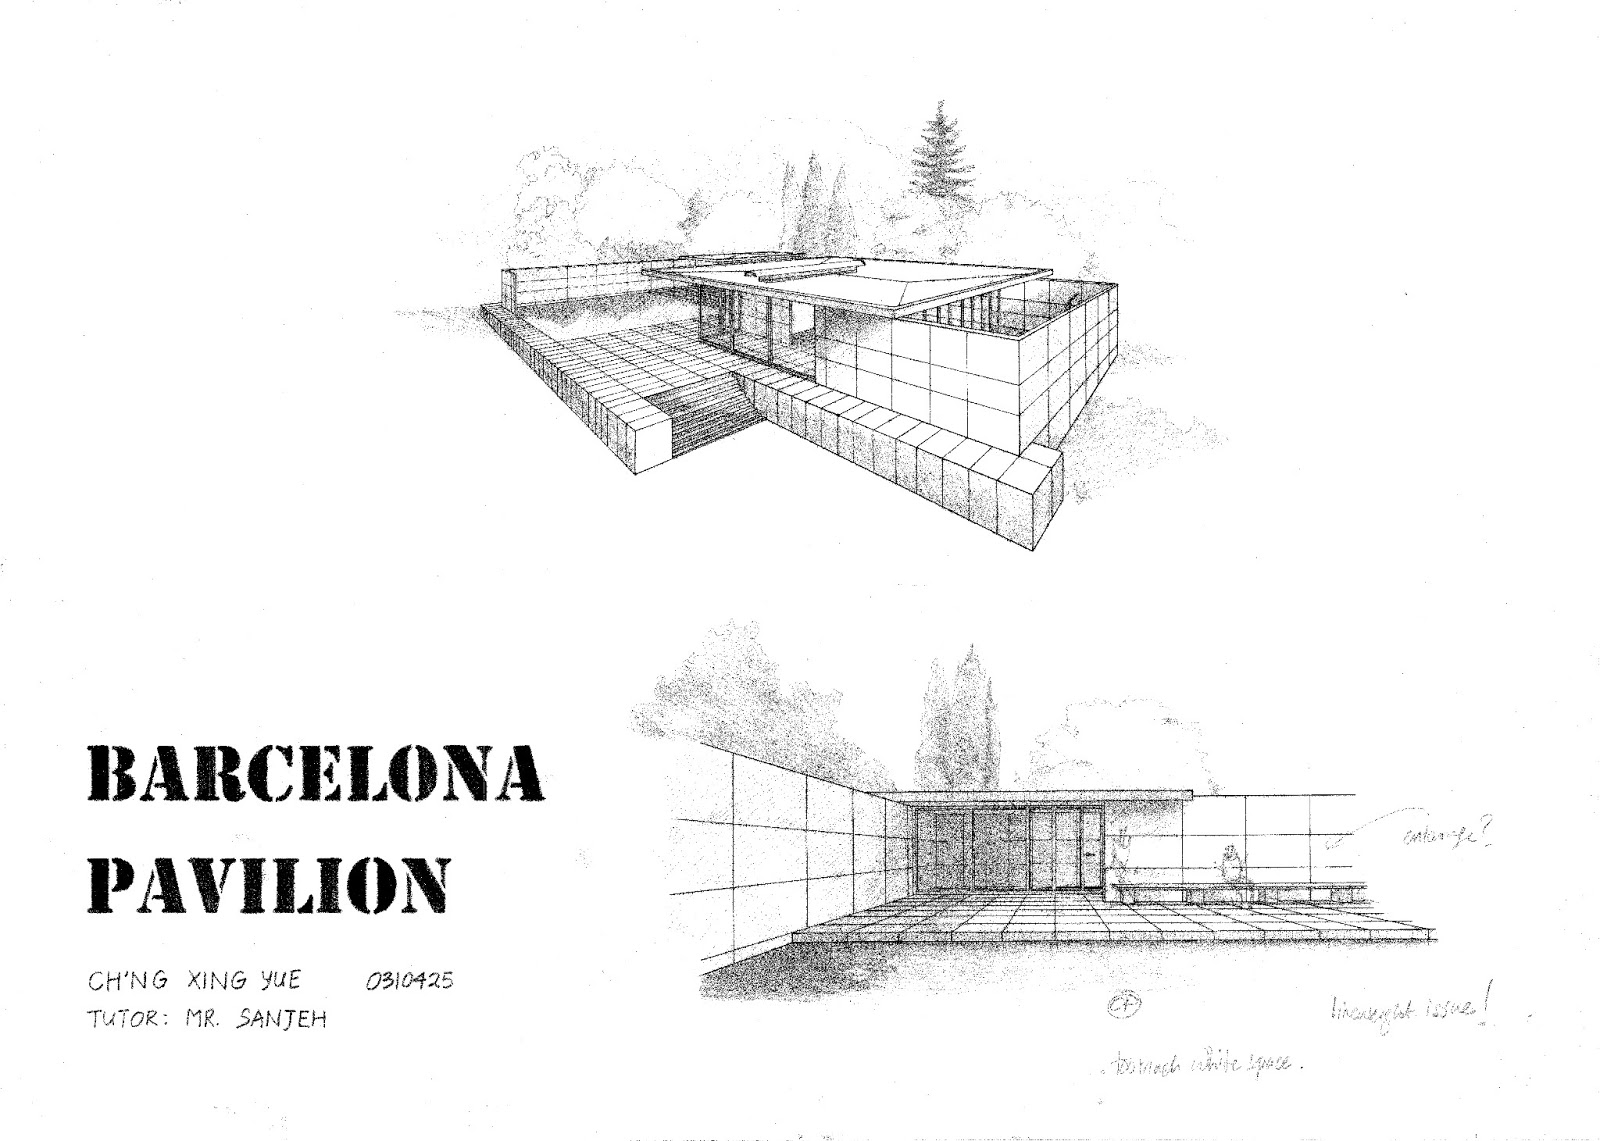 Barcelona pavilion section drawing - Barcelona Pavilion Section Drawings